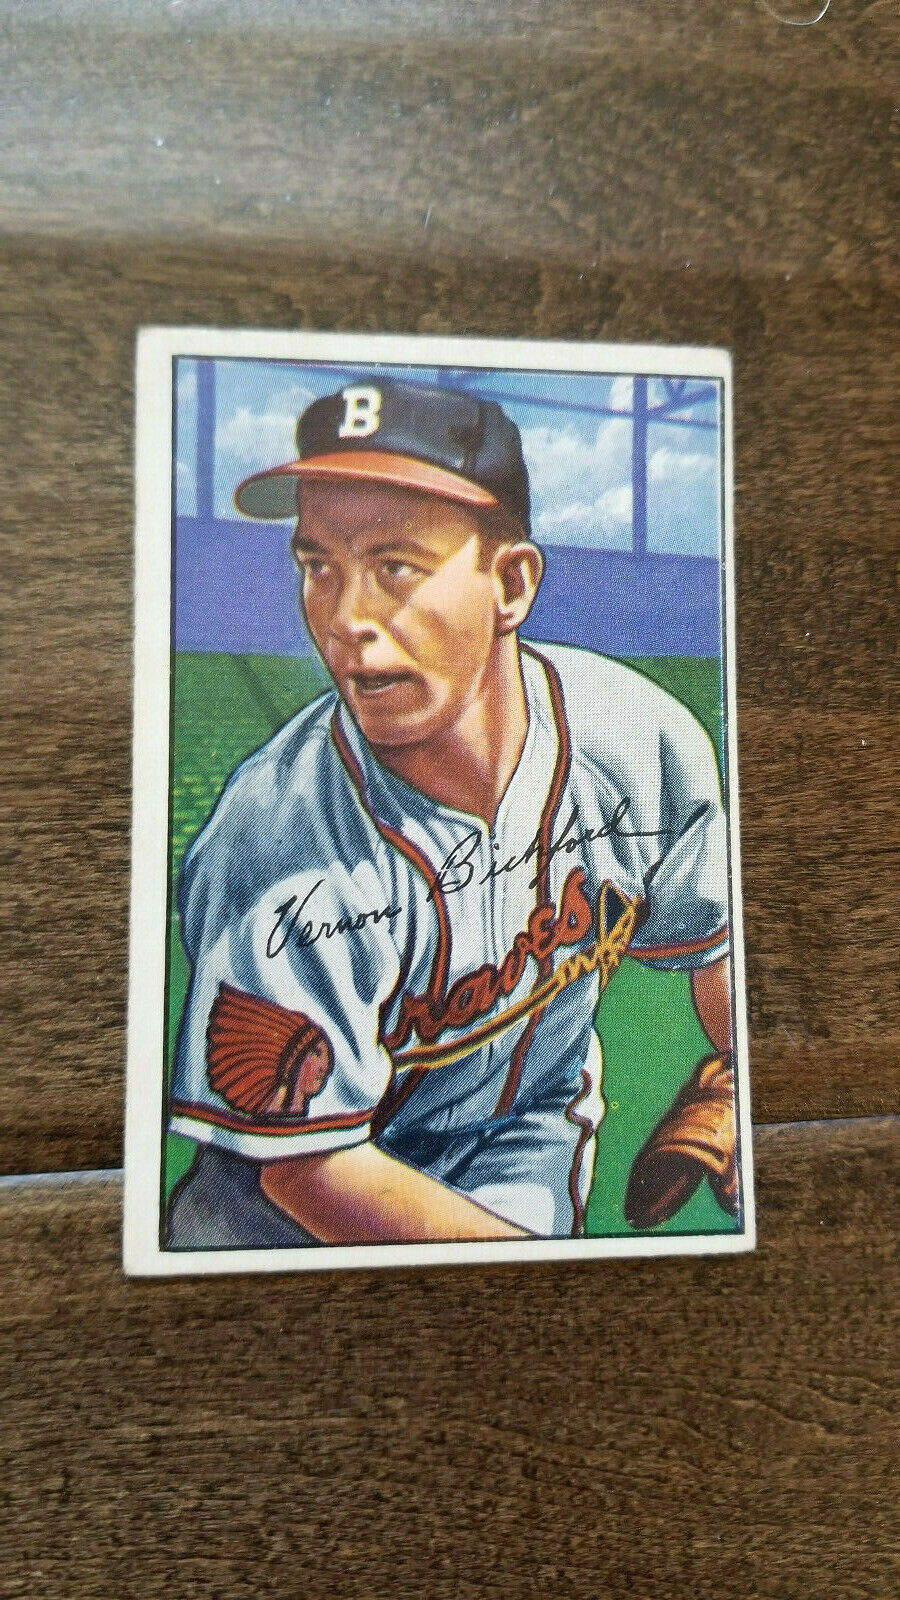 Primary image for 1952 BOWMAN BASEBALL CARD VERN BICKFORD BOSTON MILWAUKEE BRAVES NO HITTER # 48